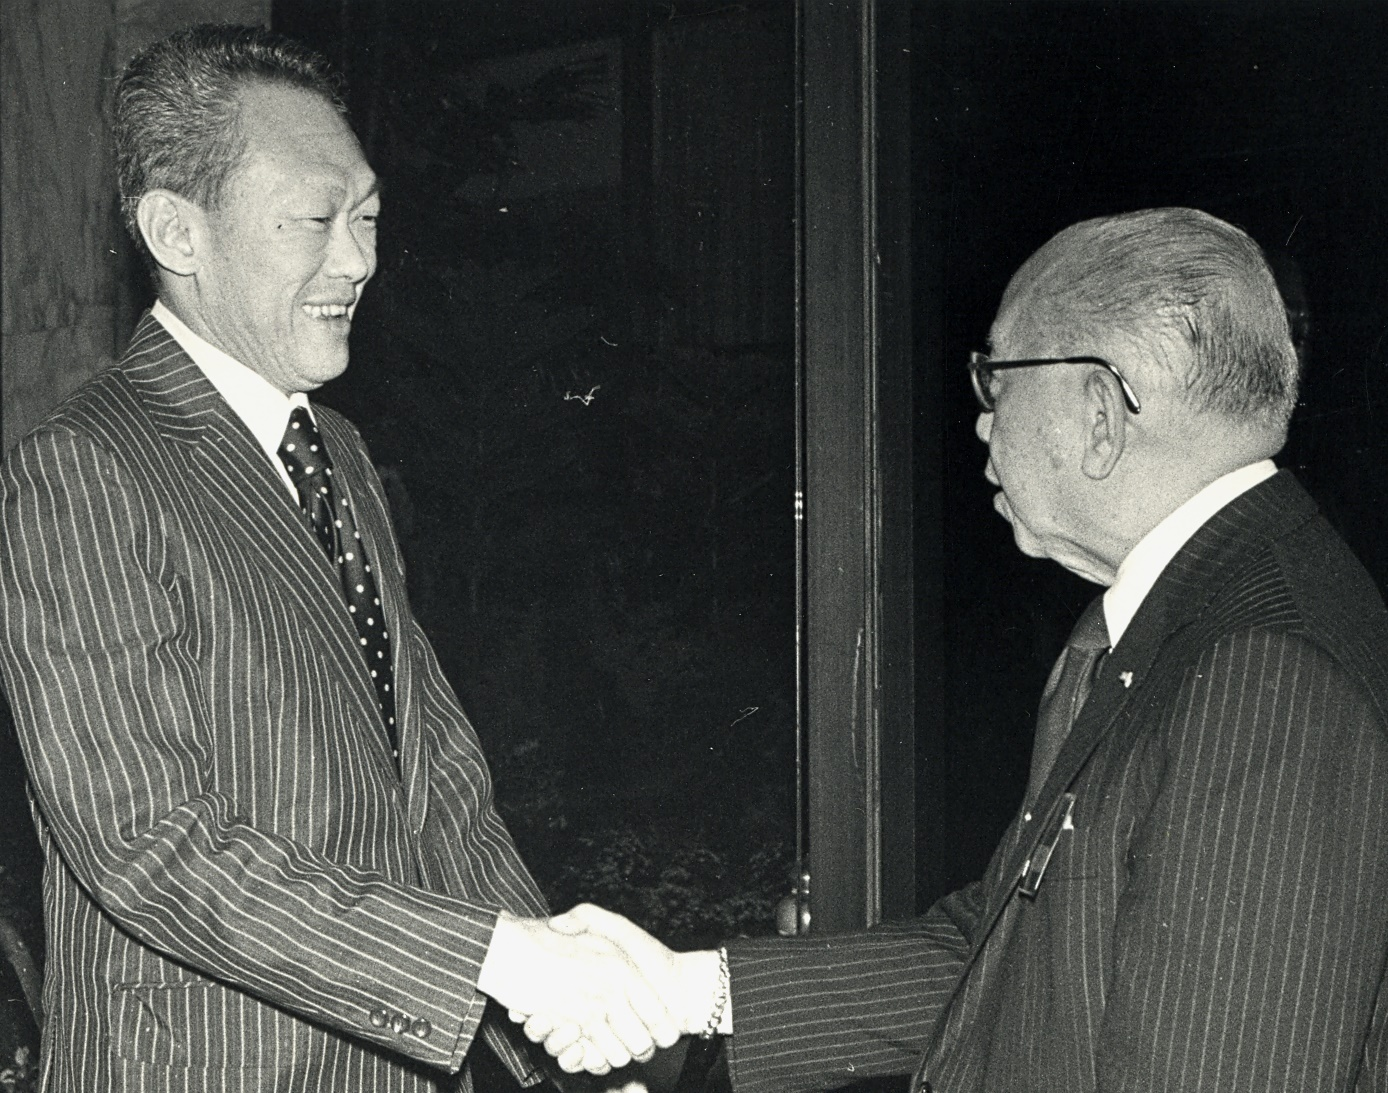 CPR and Singaporean PM Lee Kuan Yew